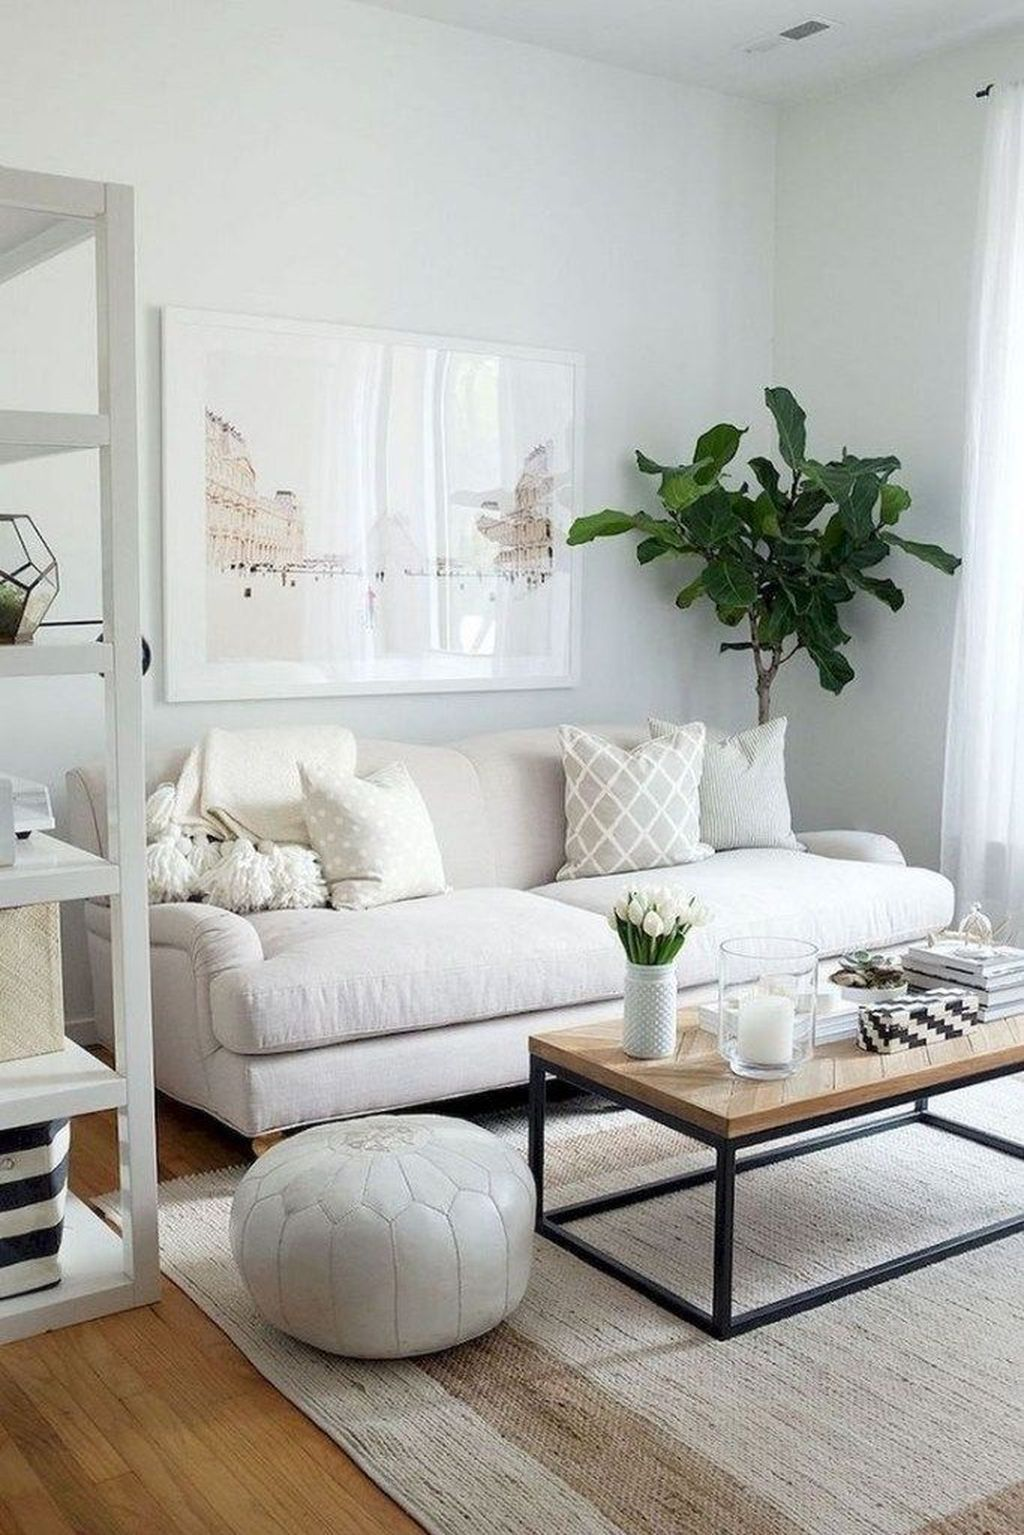 33 Awesome Small Space Living Room Decor Ideas In 2020 Small Living Room Decor Small Apartment Living Room Living Room Decor Apartment